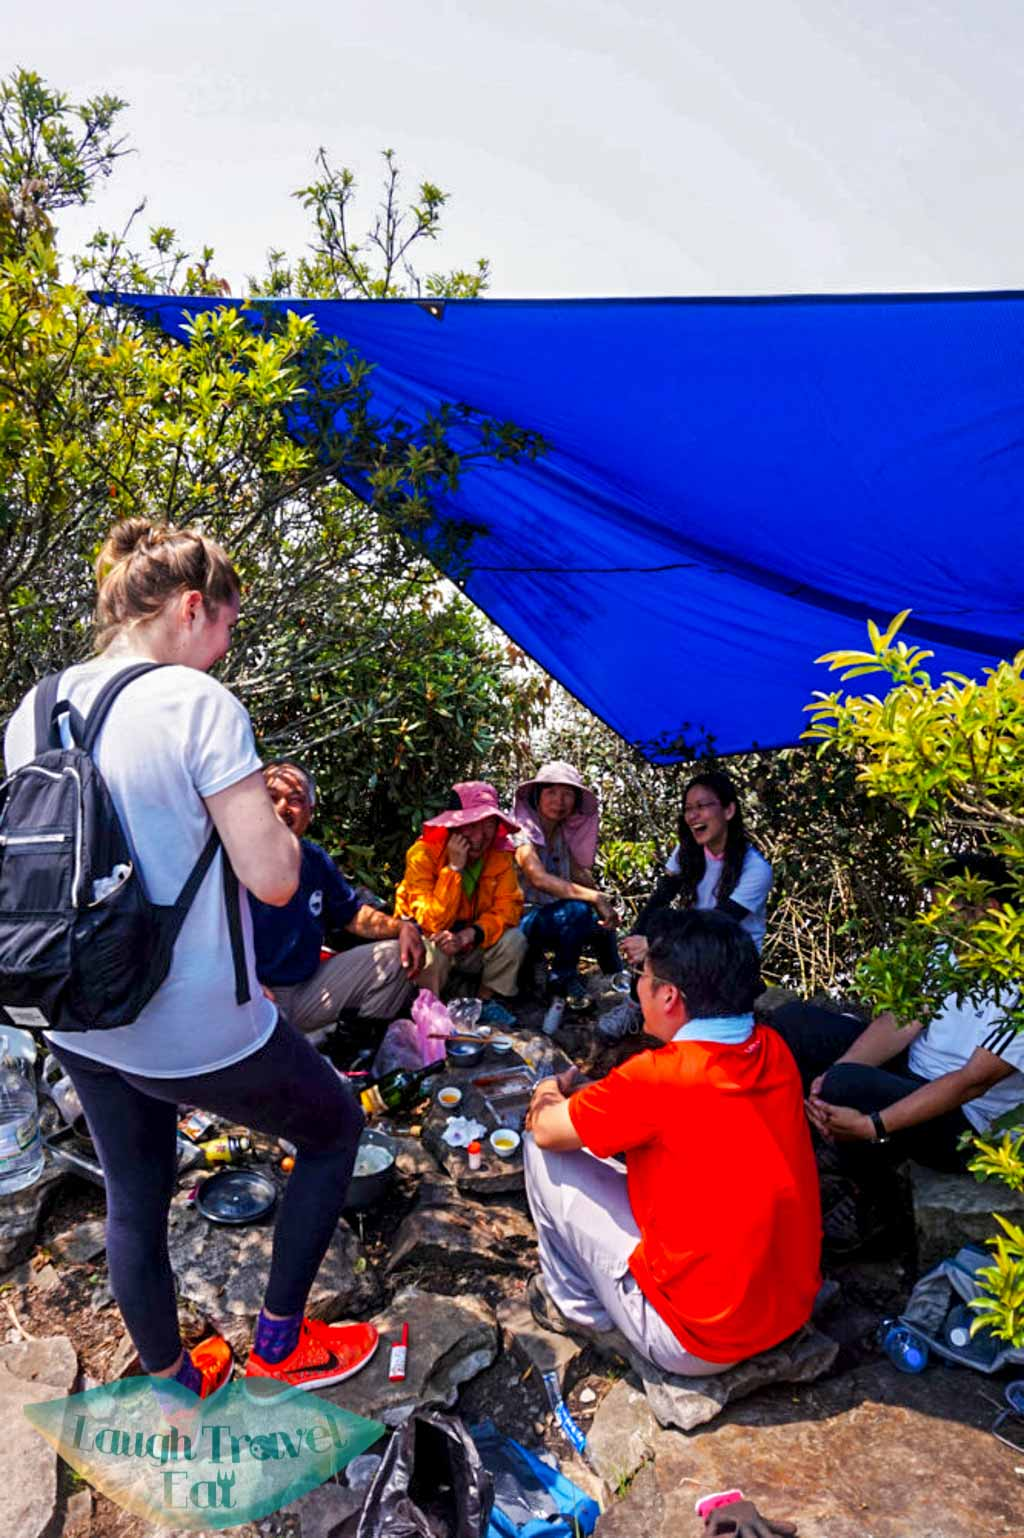 Regular hikers cooking and drinking with a cover set up for shade at Yuan Zui Mountain in Dasyueshan National Forest Recreational Area, Taichung - Laugh Travel Eat